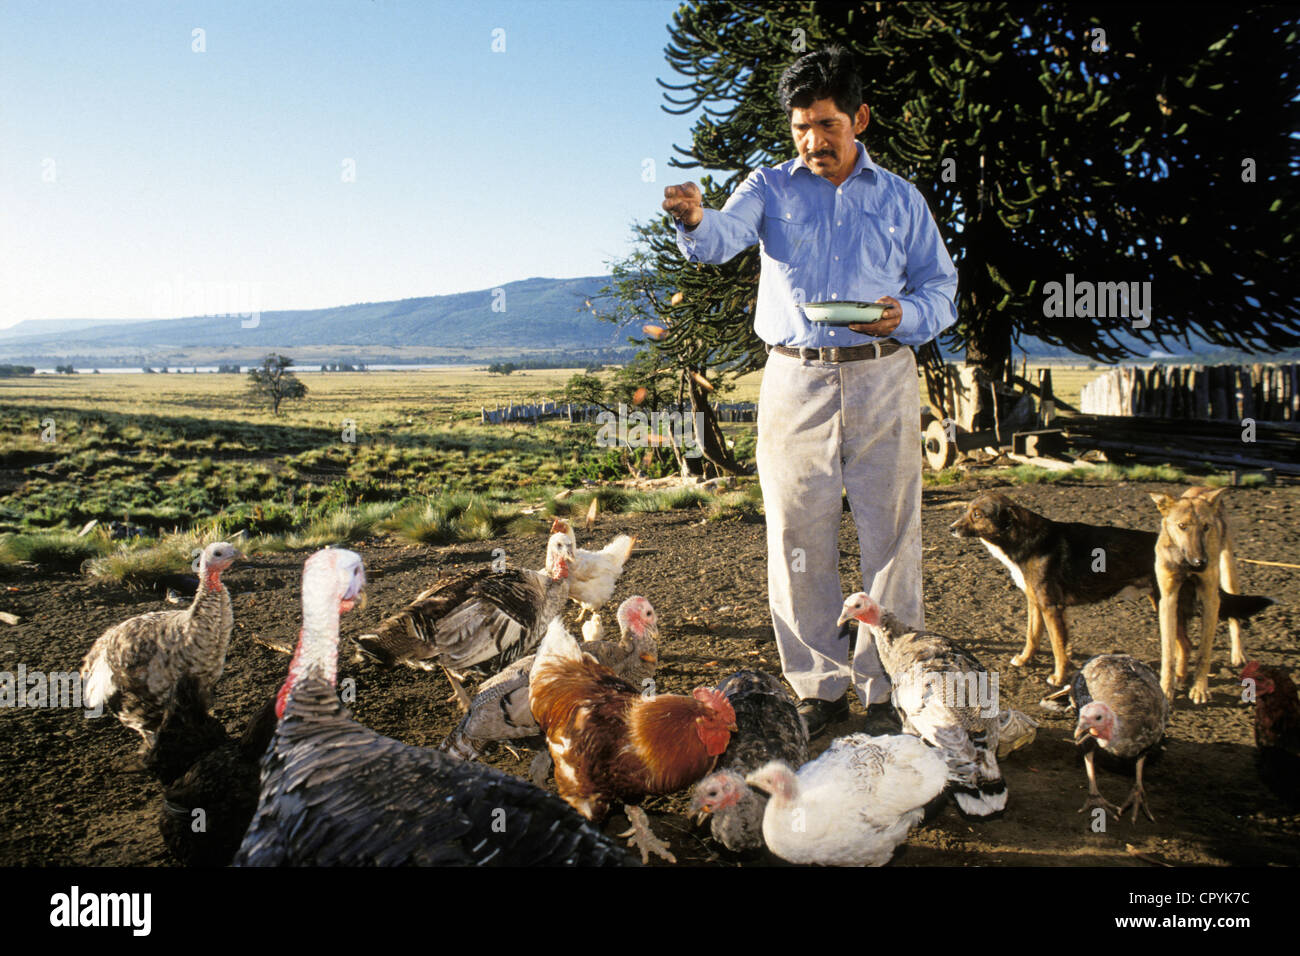 Chile Araucania Region Quinquen valley in the Mapuche indians community the nut is also used to feed the chickens Stock Photo